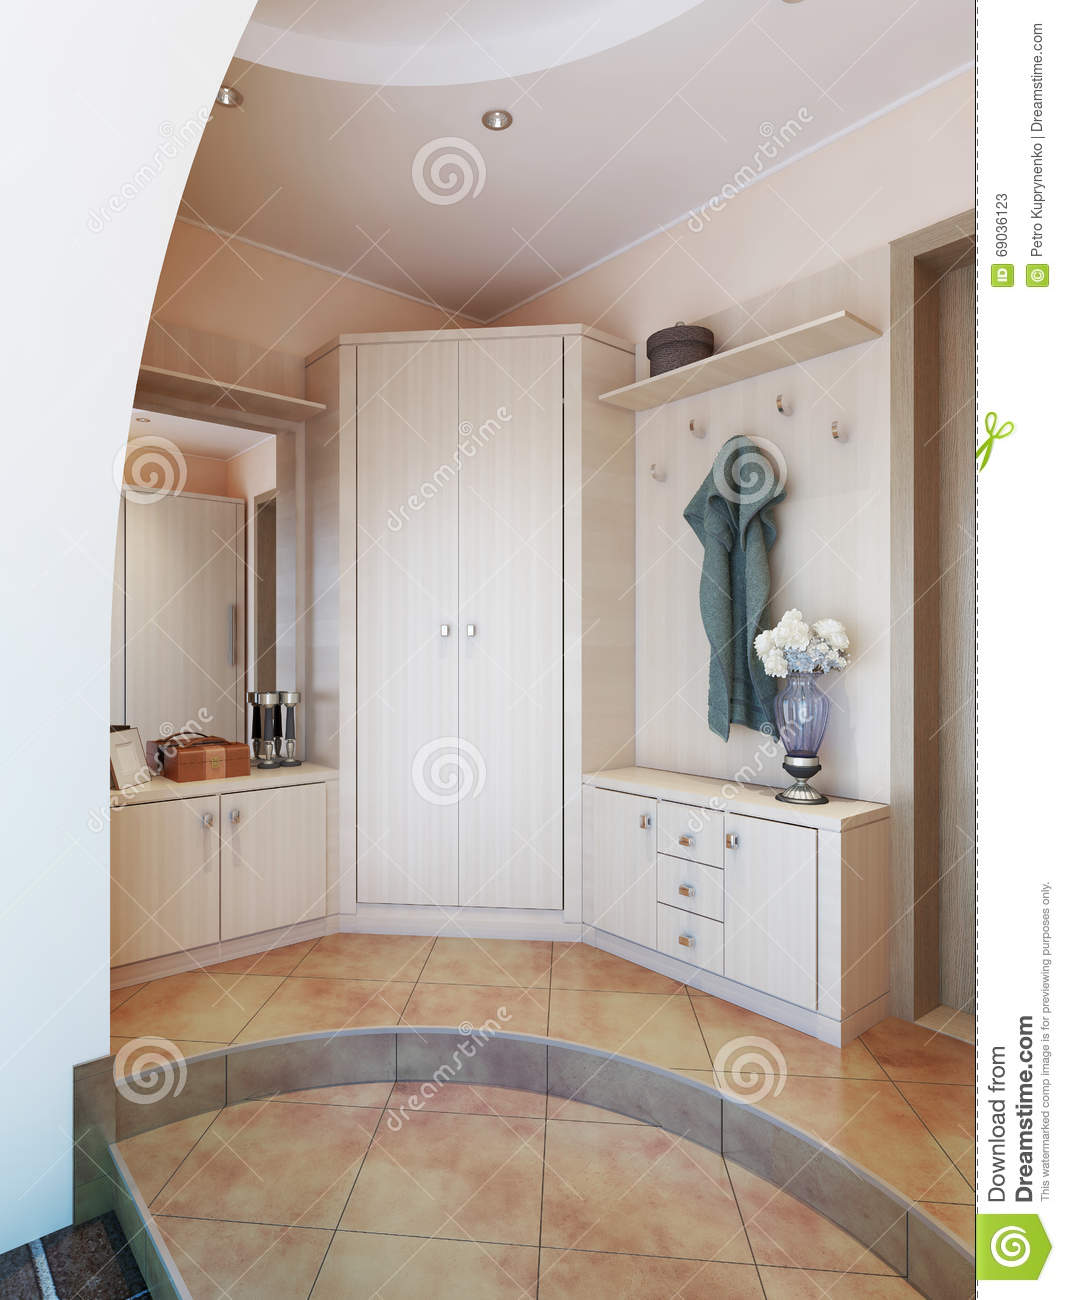 hallway in modern style with hangers a mirror dressing table an stock illustration image. Black Bedroom Furniture Sets. Home Design Ideas